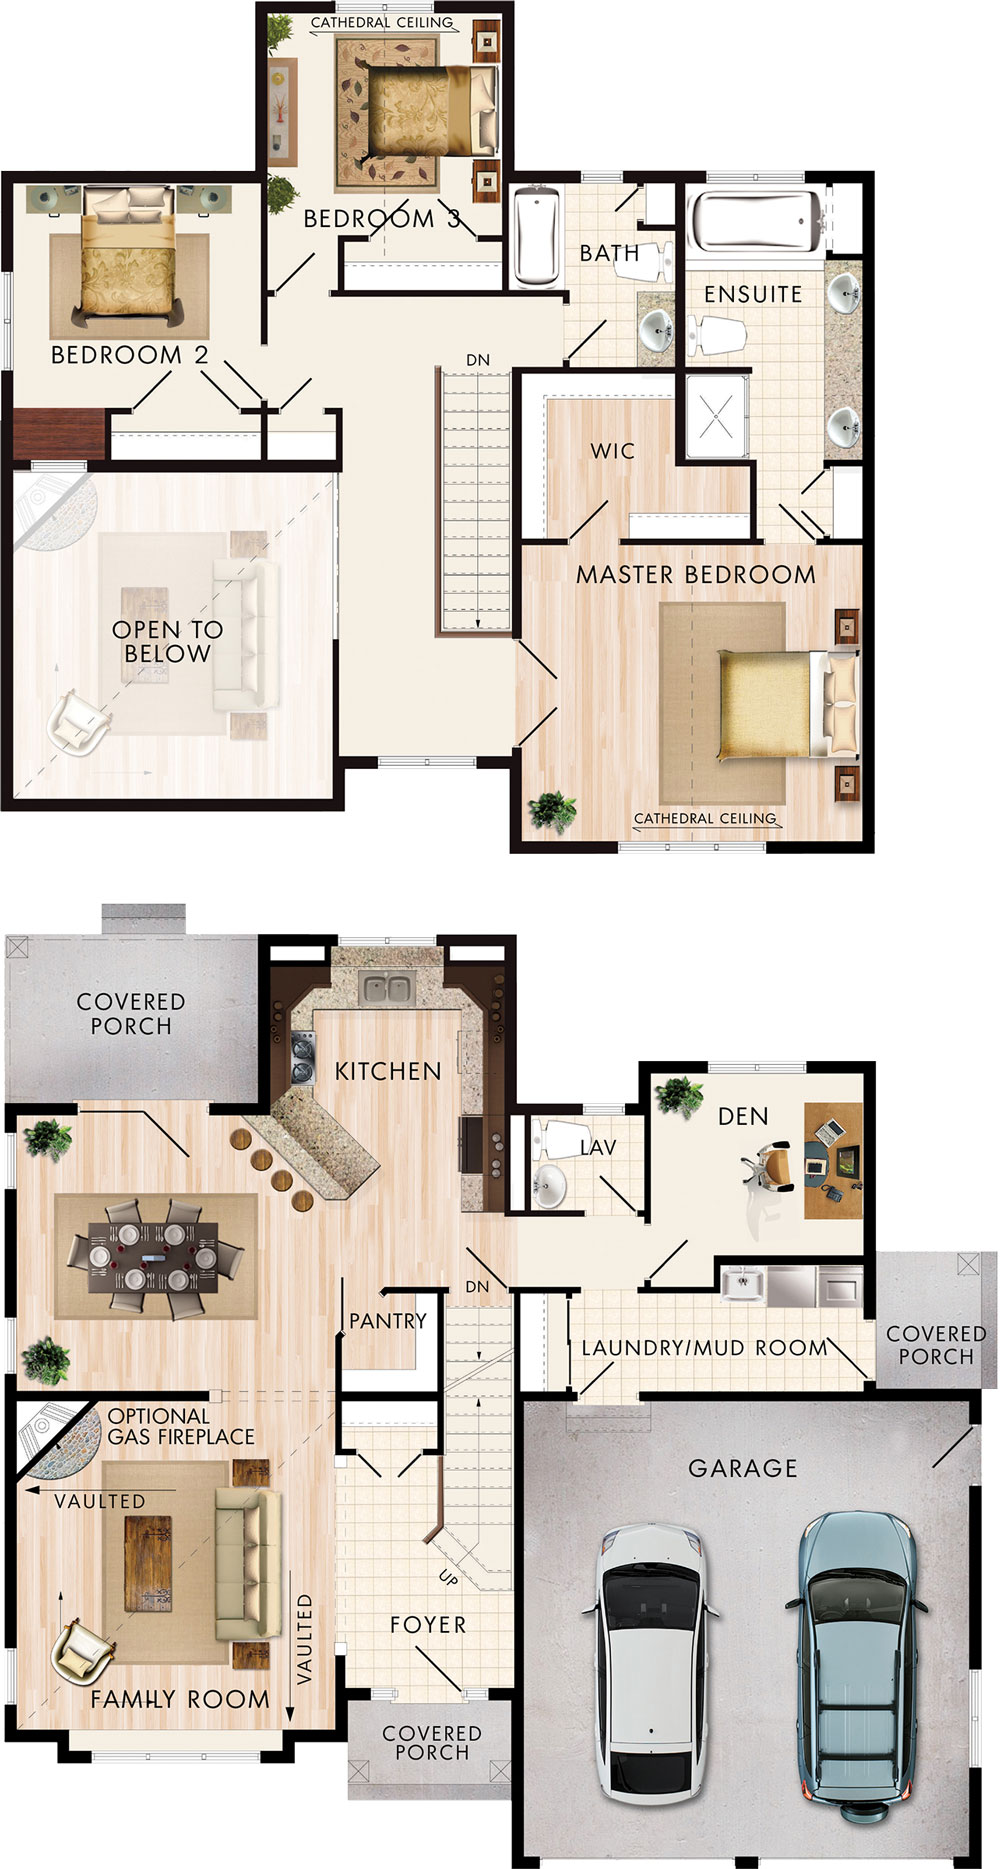 Beaver Homes and Cottages Cranbrook – Beaver Homes Floor Plans